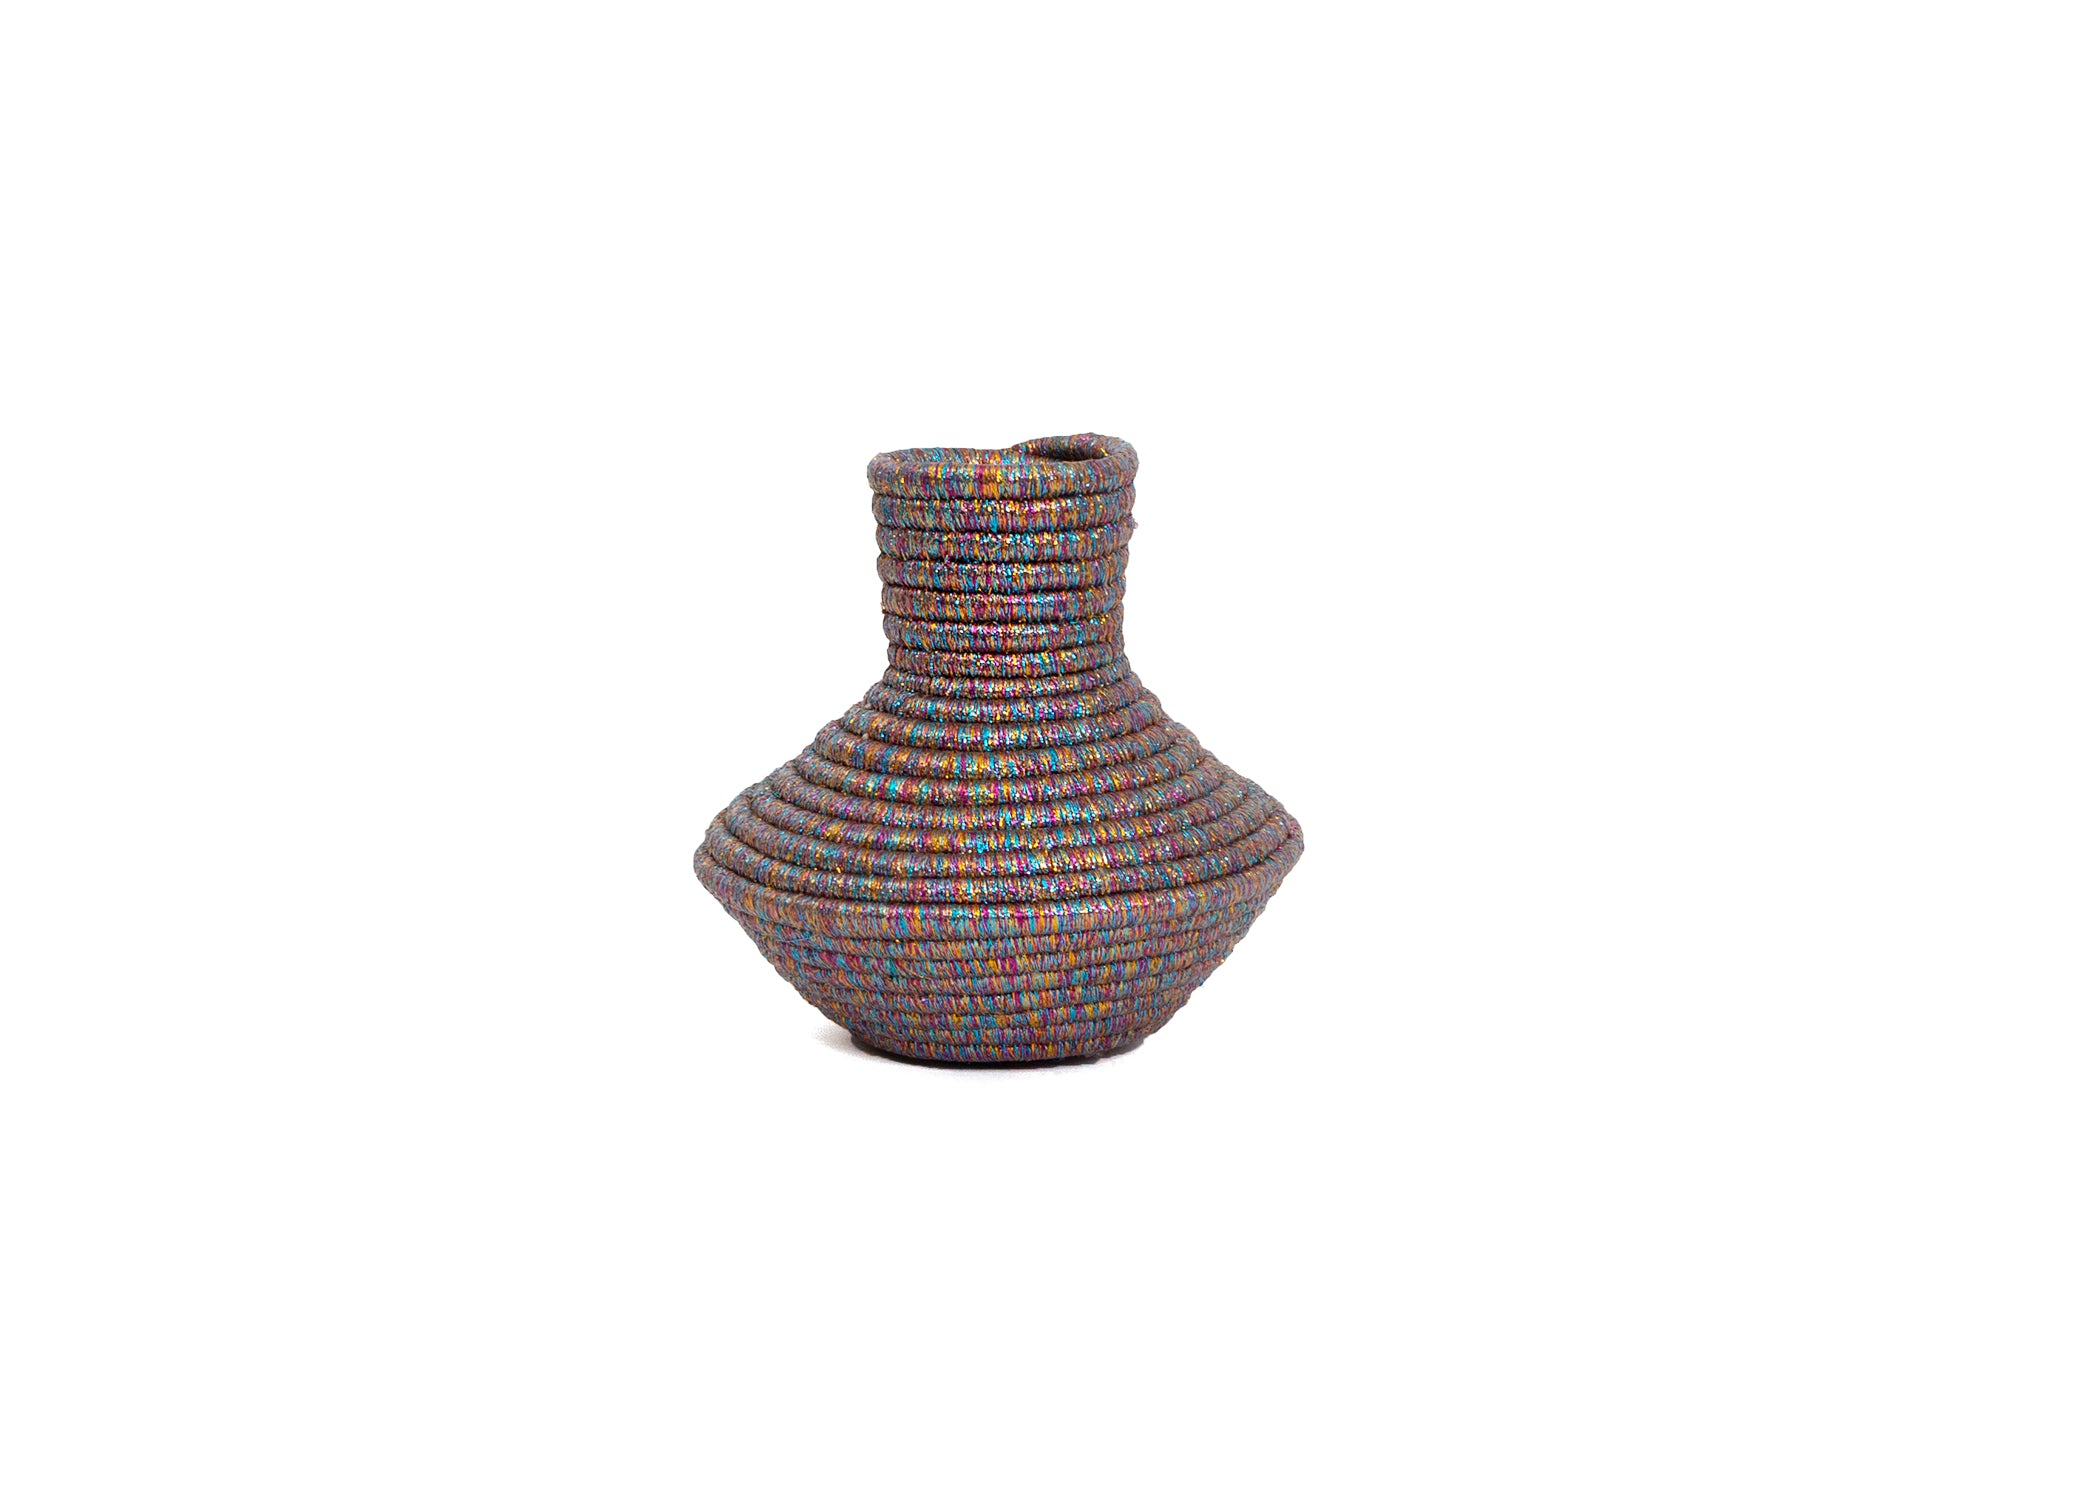 Metallic Prism Short Tapered Vase - KAZI - Artisan made high quality home decor and wall art